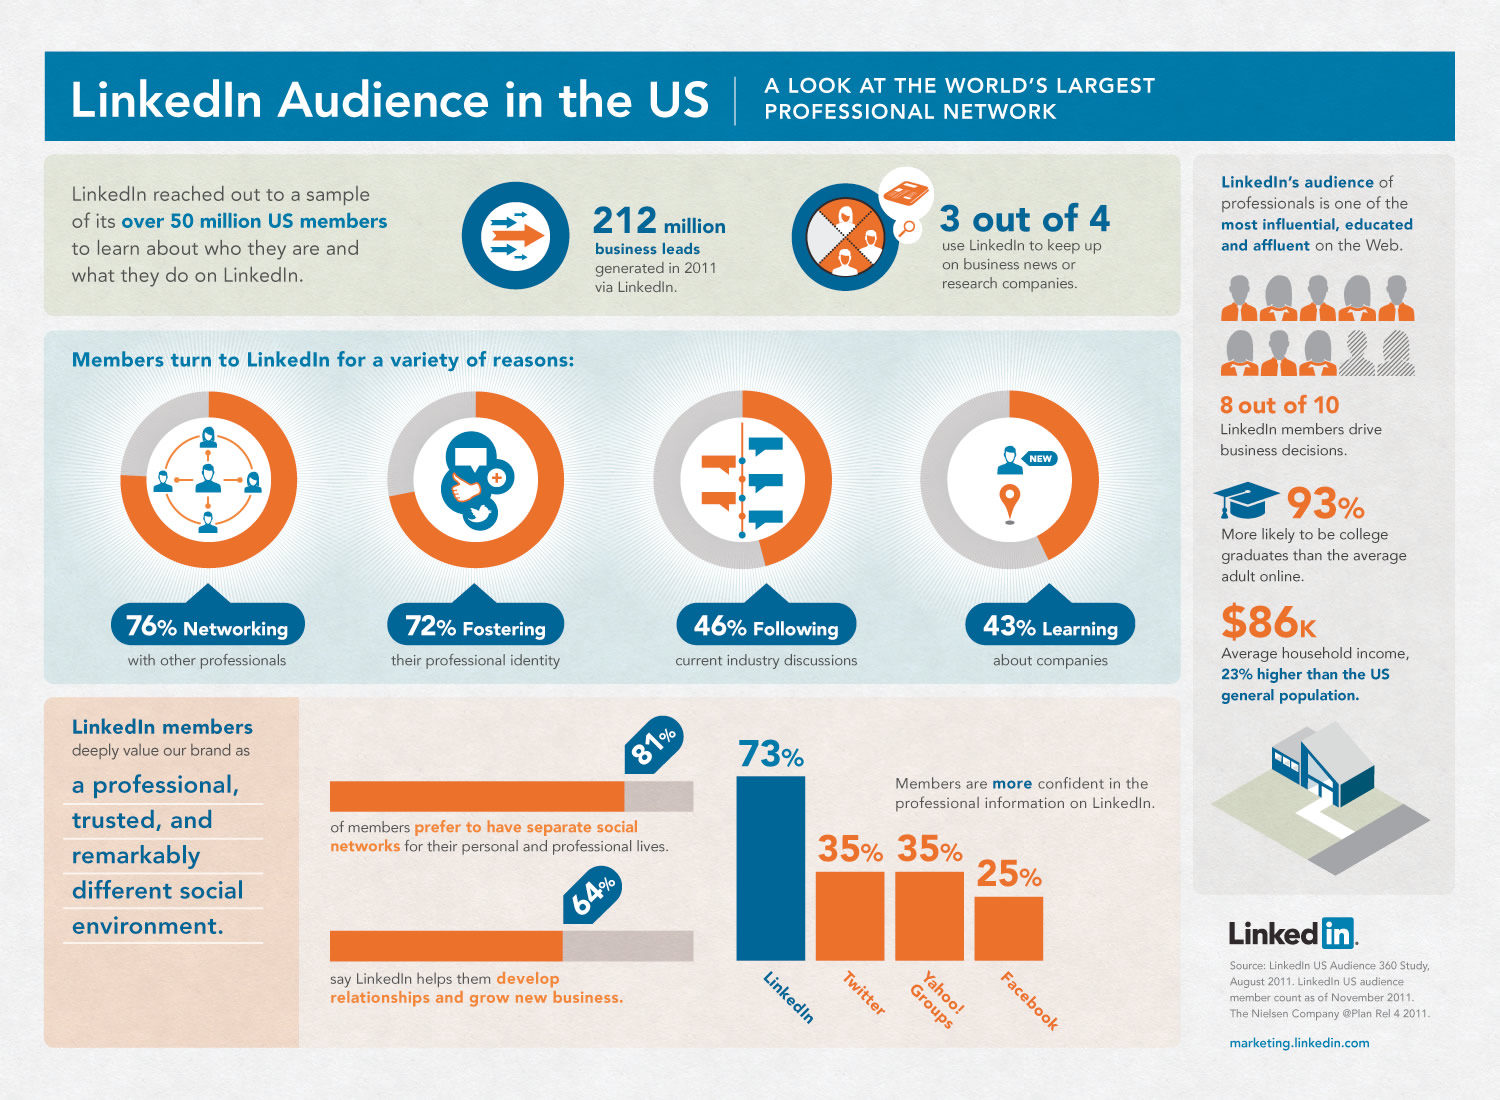 LinkedIn Audience in the US Infographic